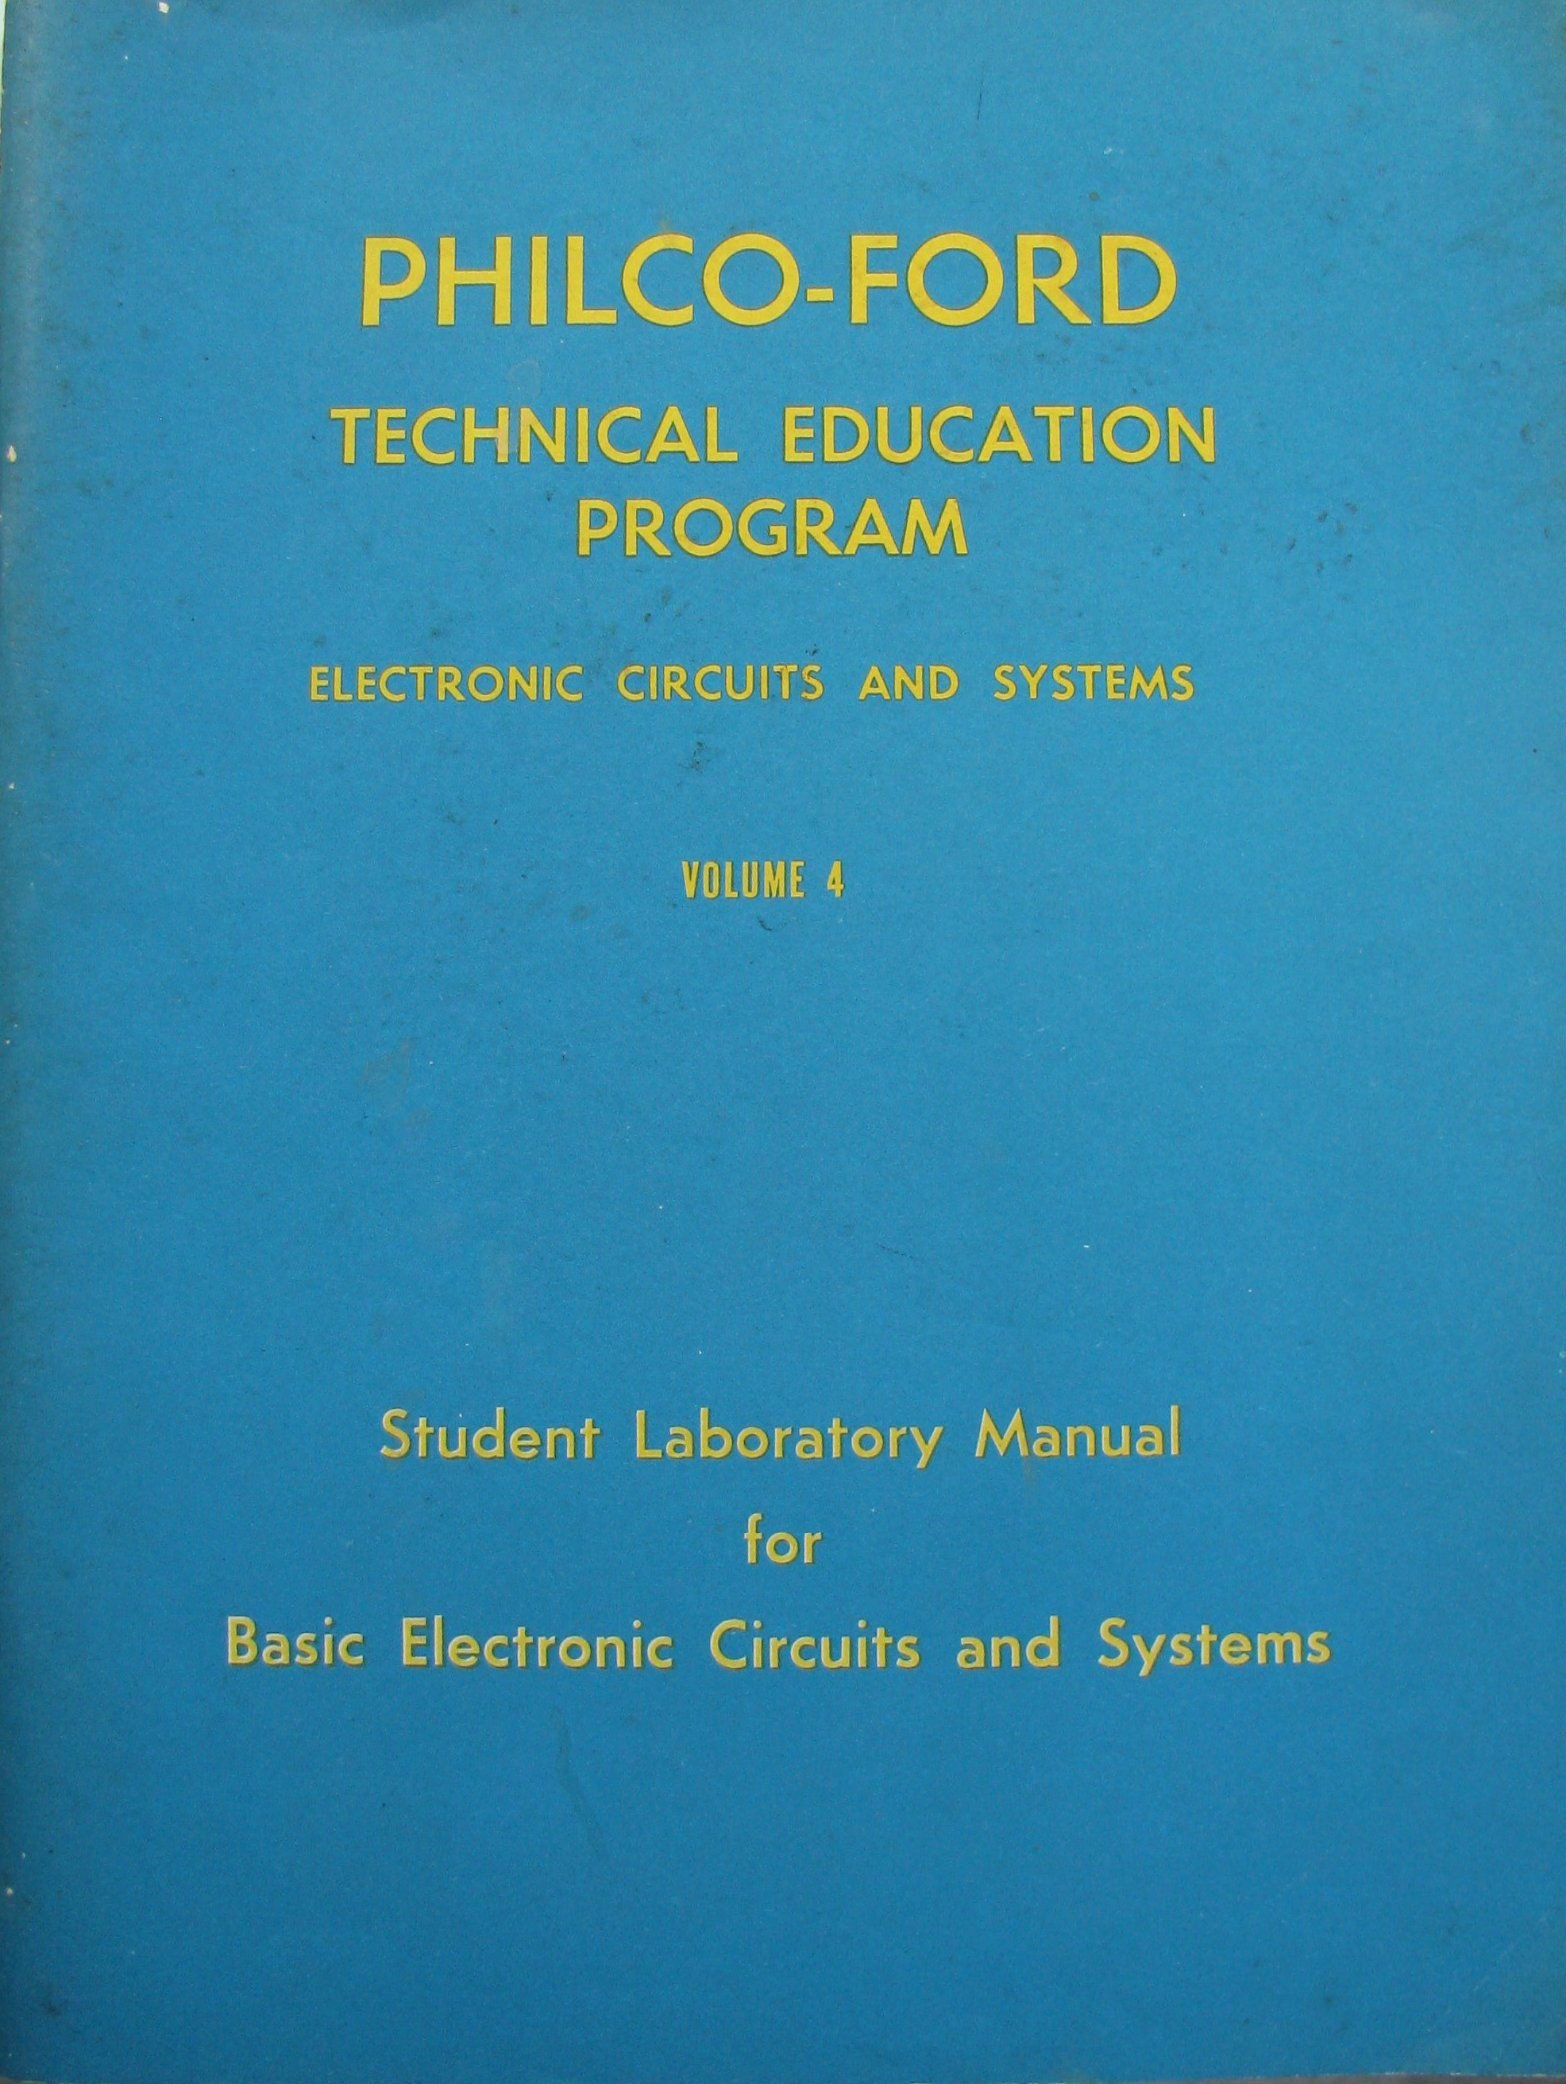 Philco-Ford Technical Education Program Vol 4 Student Lab Manual for Basic  Electronic Circuits and Systems: Philco Ford: Amazon.com: Books